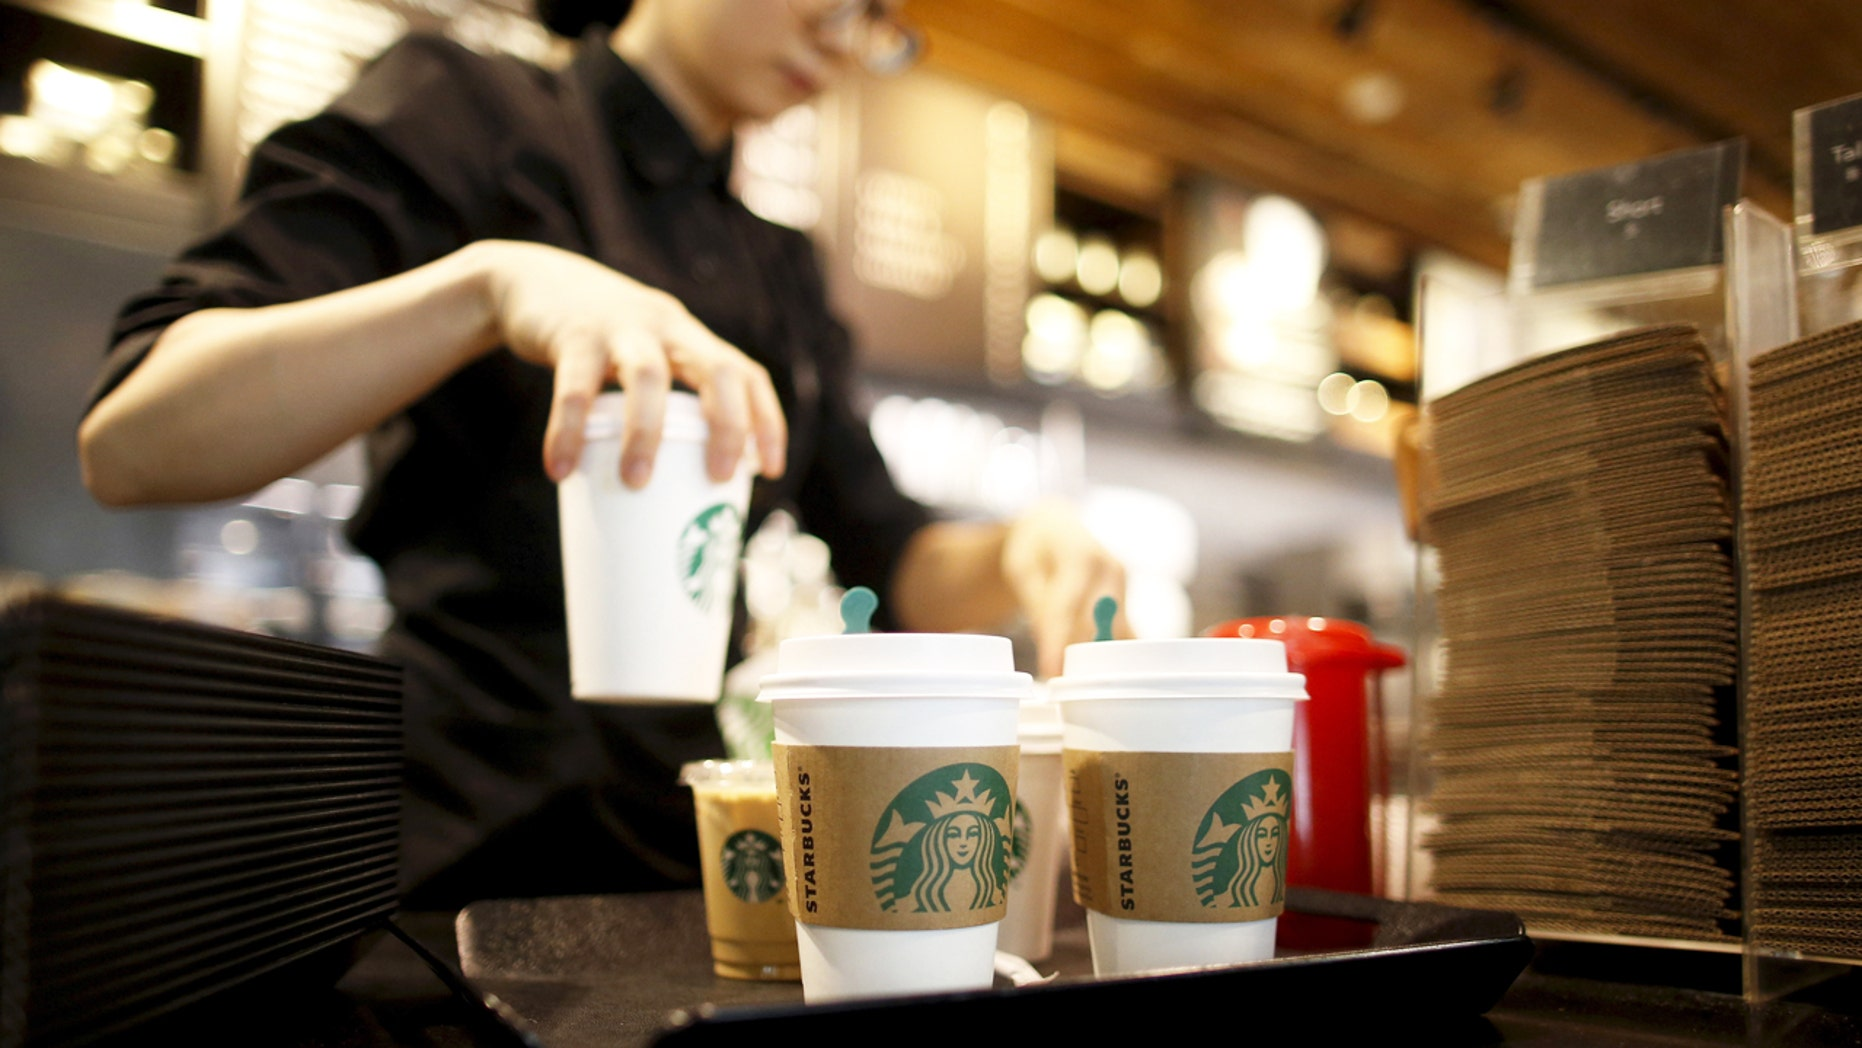 A staff serves beverages at a Starbucks coffee shop in Seoul, South Korea, in this March 7, 2016, file photo. REUTERS/Kim Hong-Ji/Files  GLOBAL BUSINESS WEEK AHEAD PACKAGE - SEARCH 'BUSINESS WEEK AHEAD APRIL 18'  FOR ALL IMAGES - RTX2AE8U